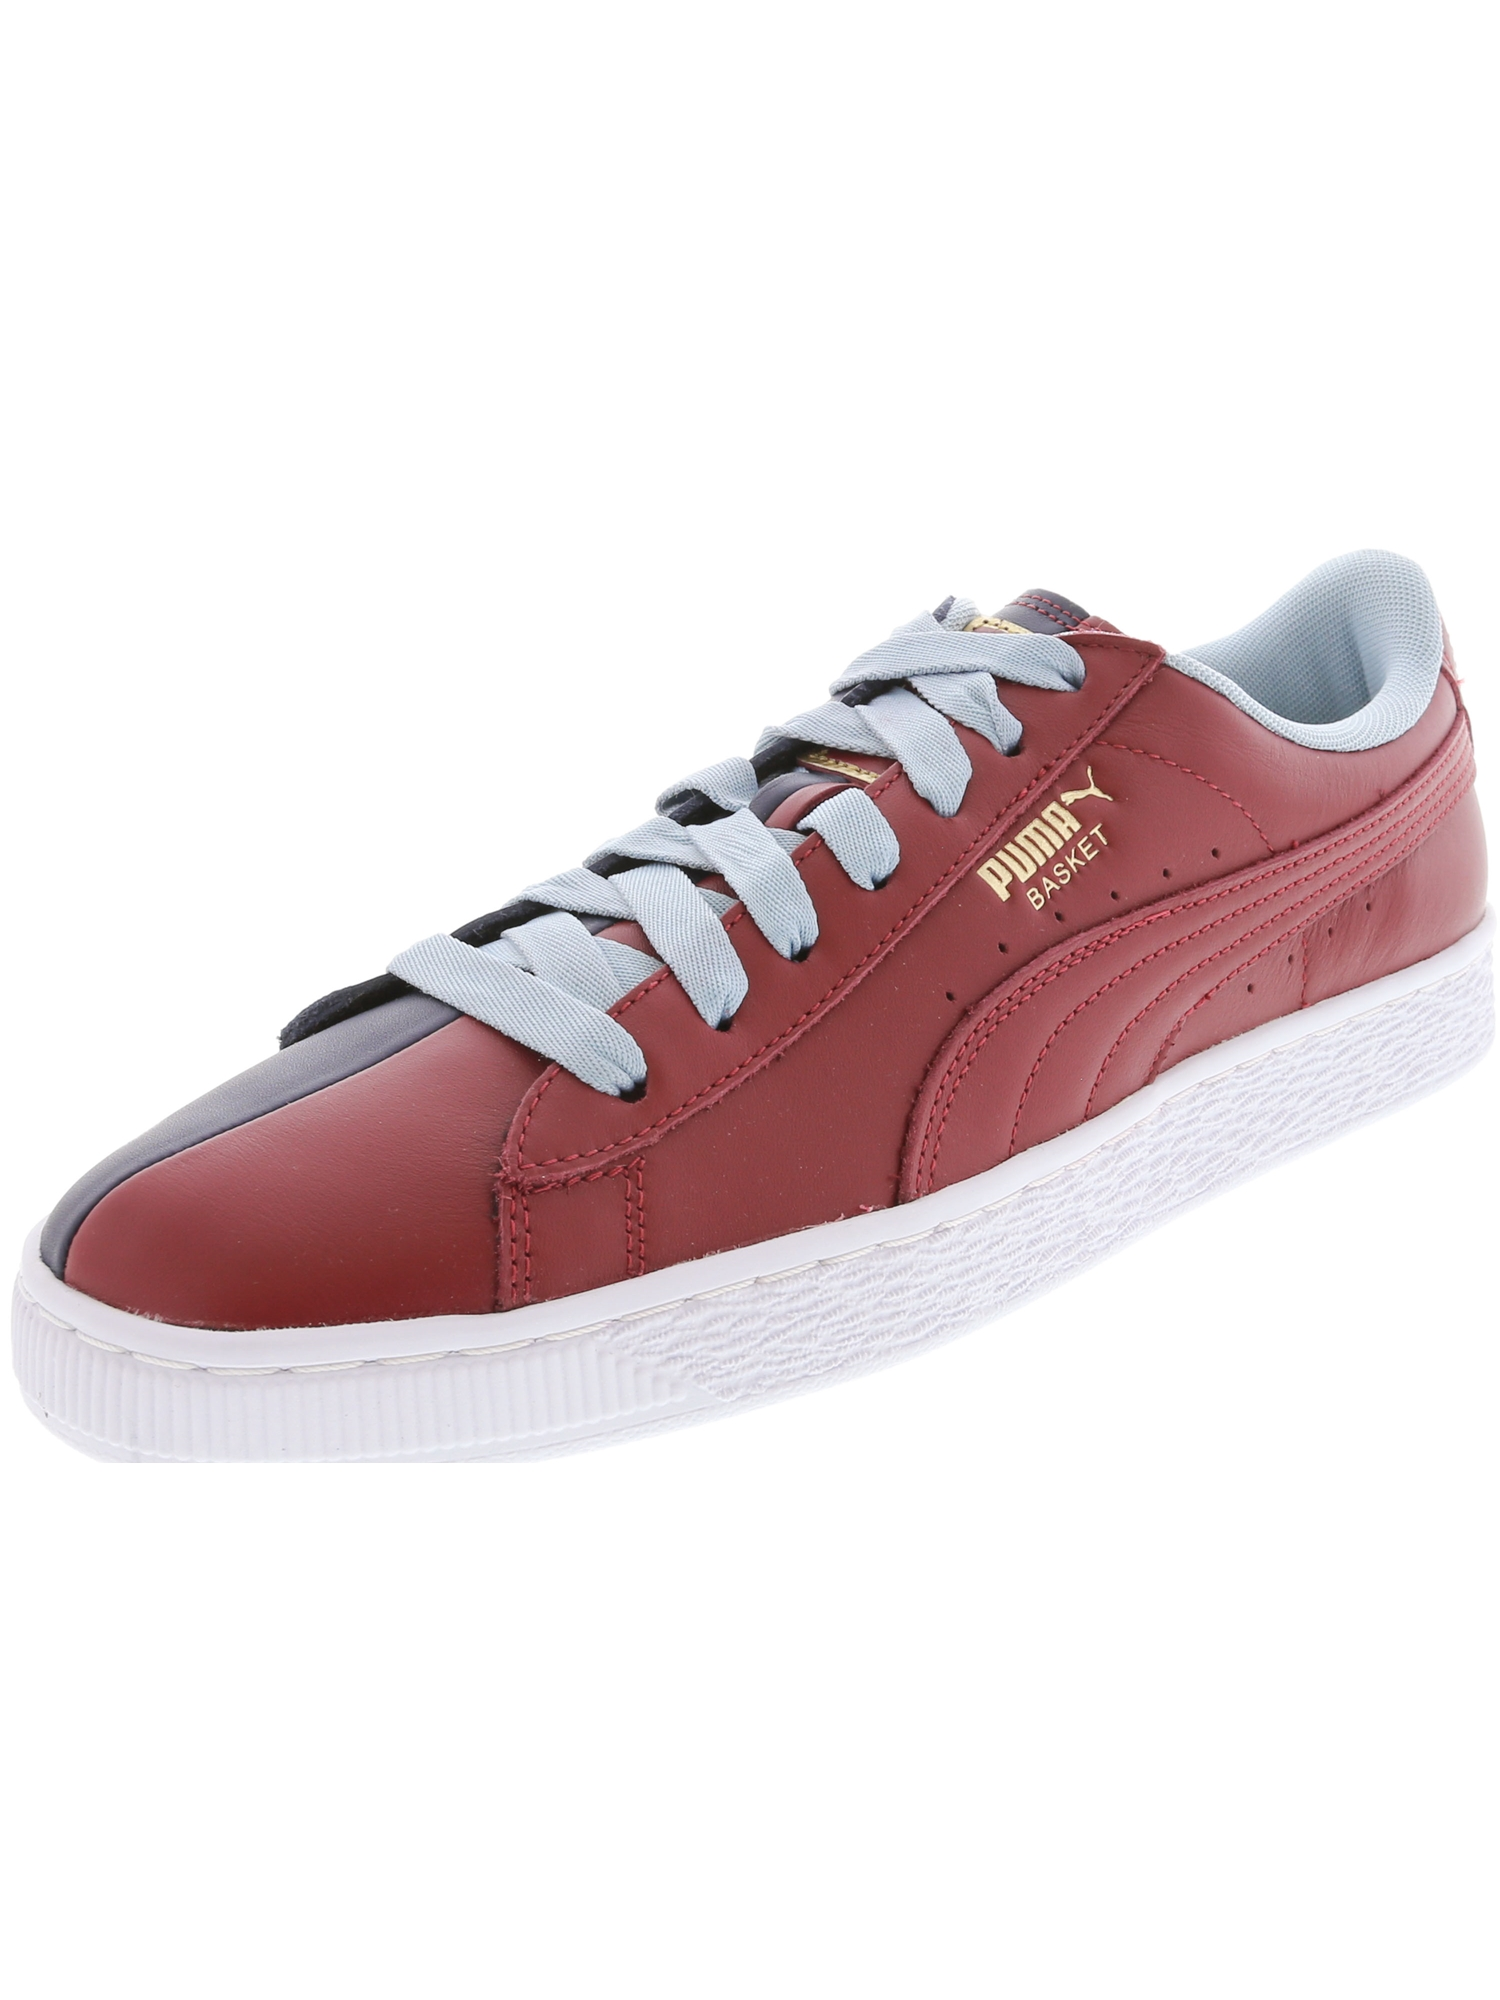 Puma Women?s Basket New School Every Day Sneaker - 11M - Pomegranate / Peacoat